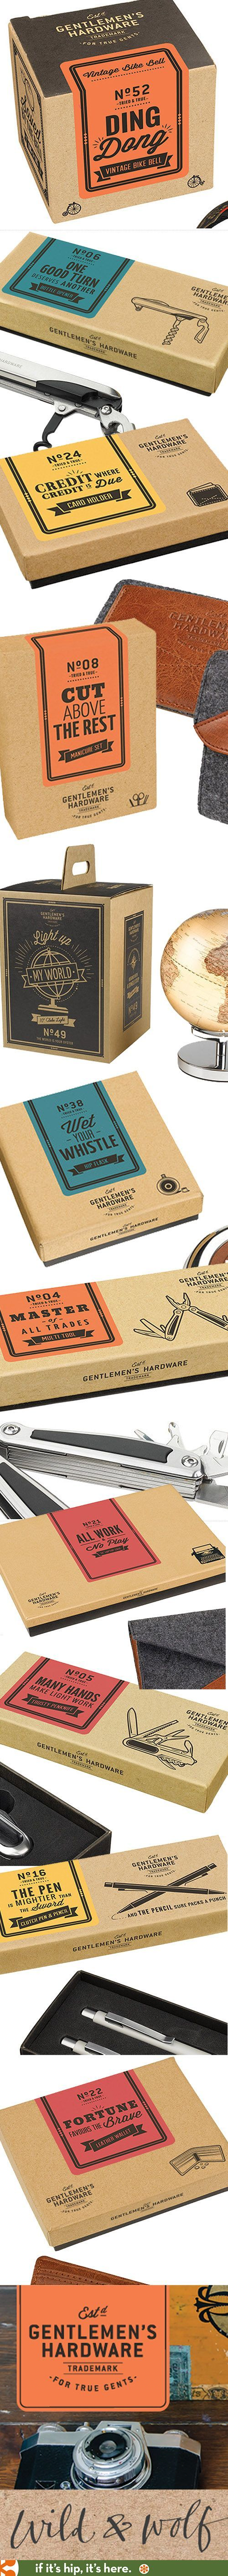 #packaging A look at the Vintage- style packaging for Wild & Wolf's Gentleman's Hardware Collection PD